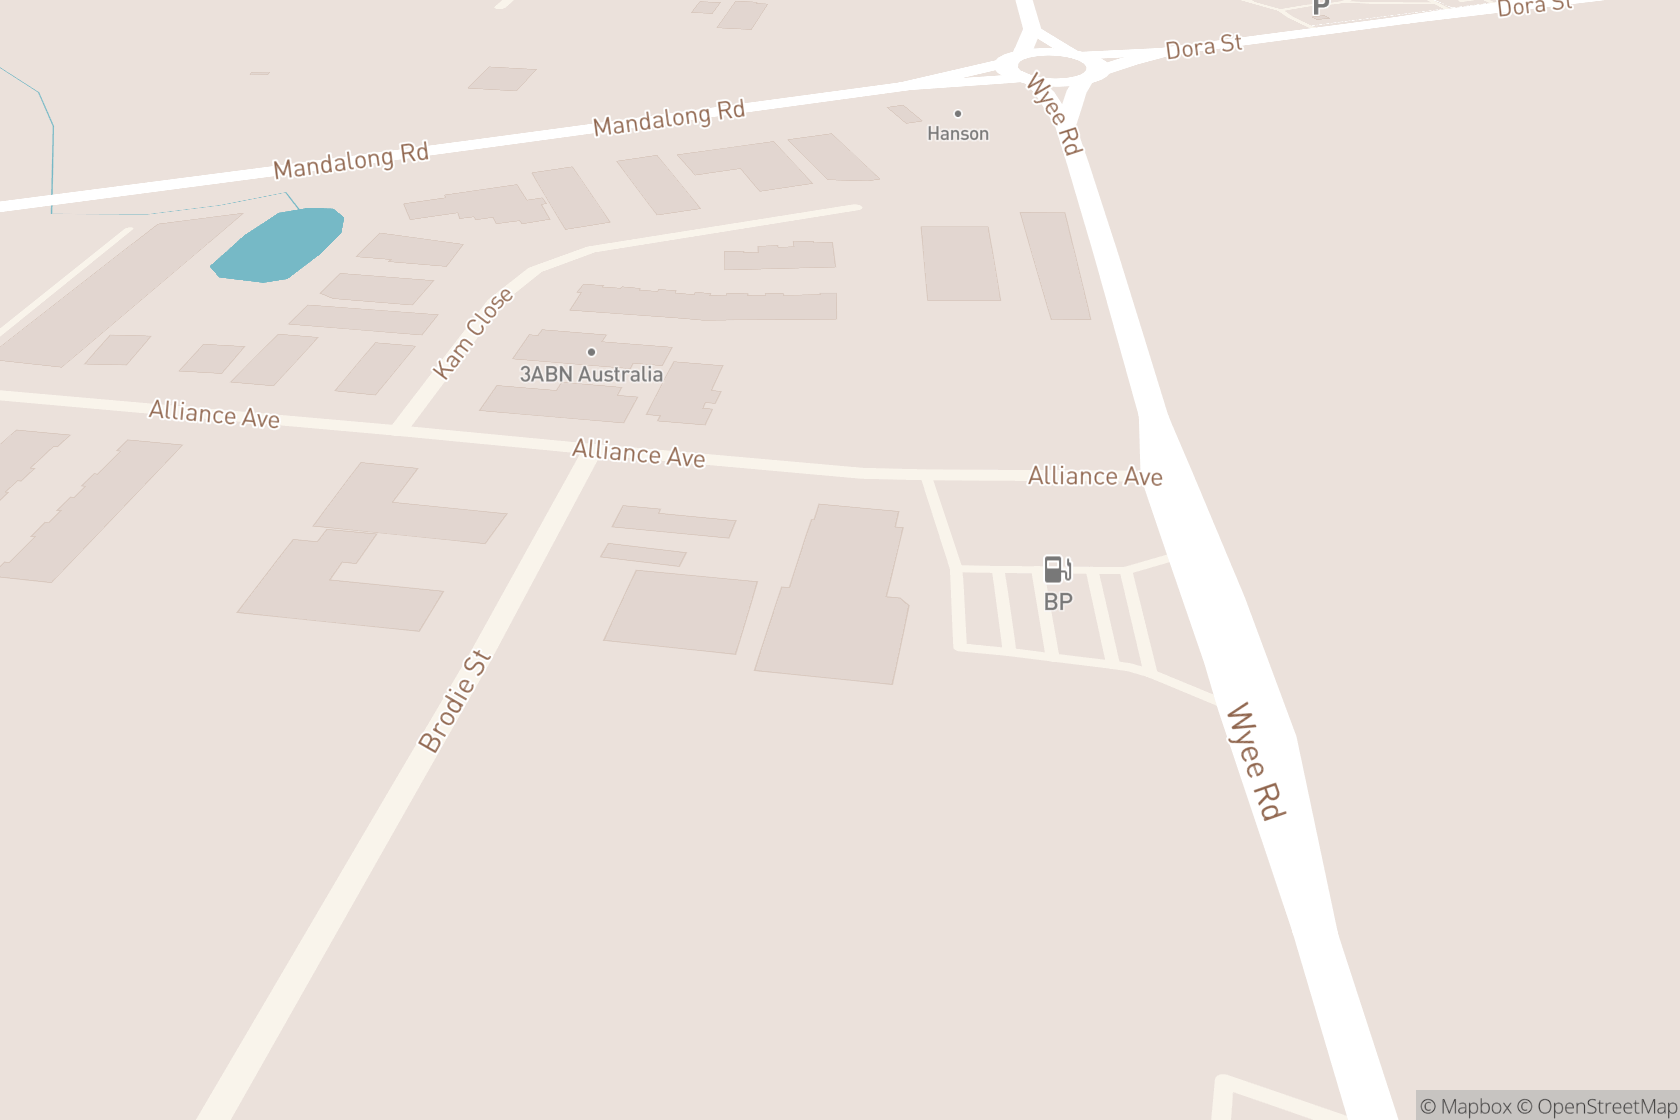 Anytime Fitness map location